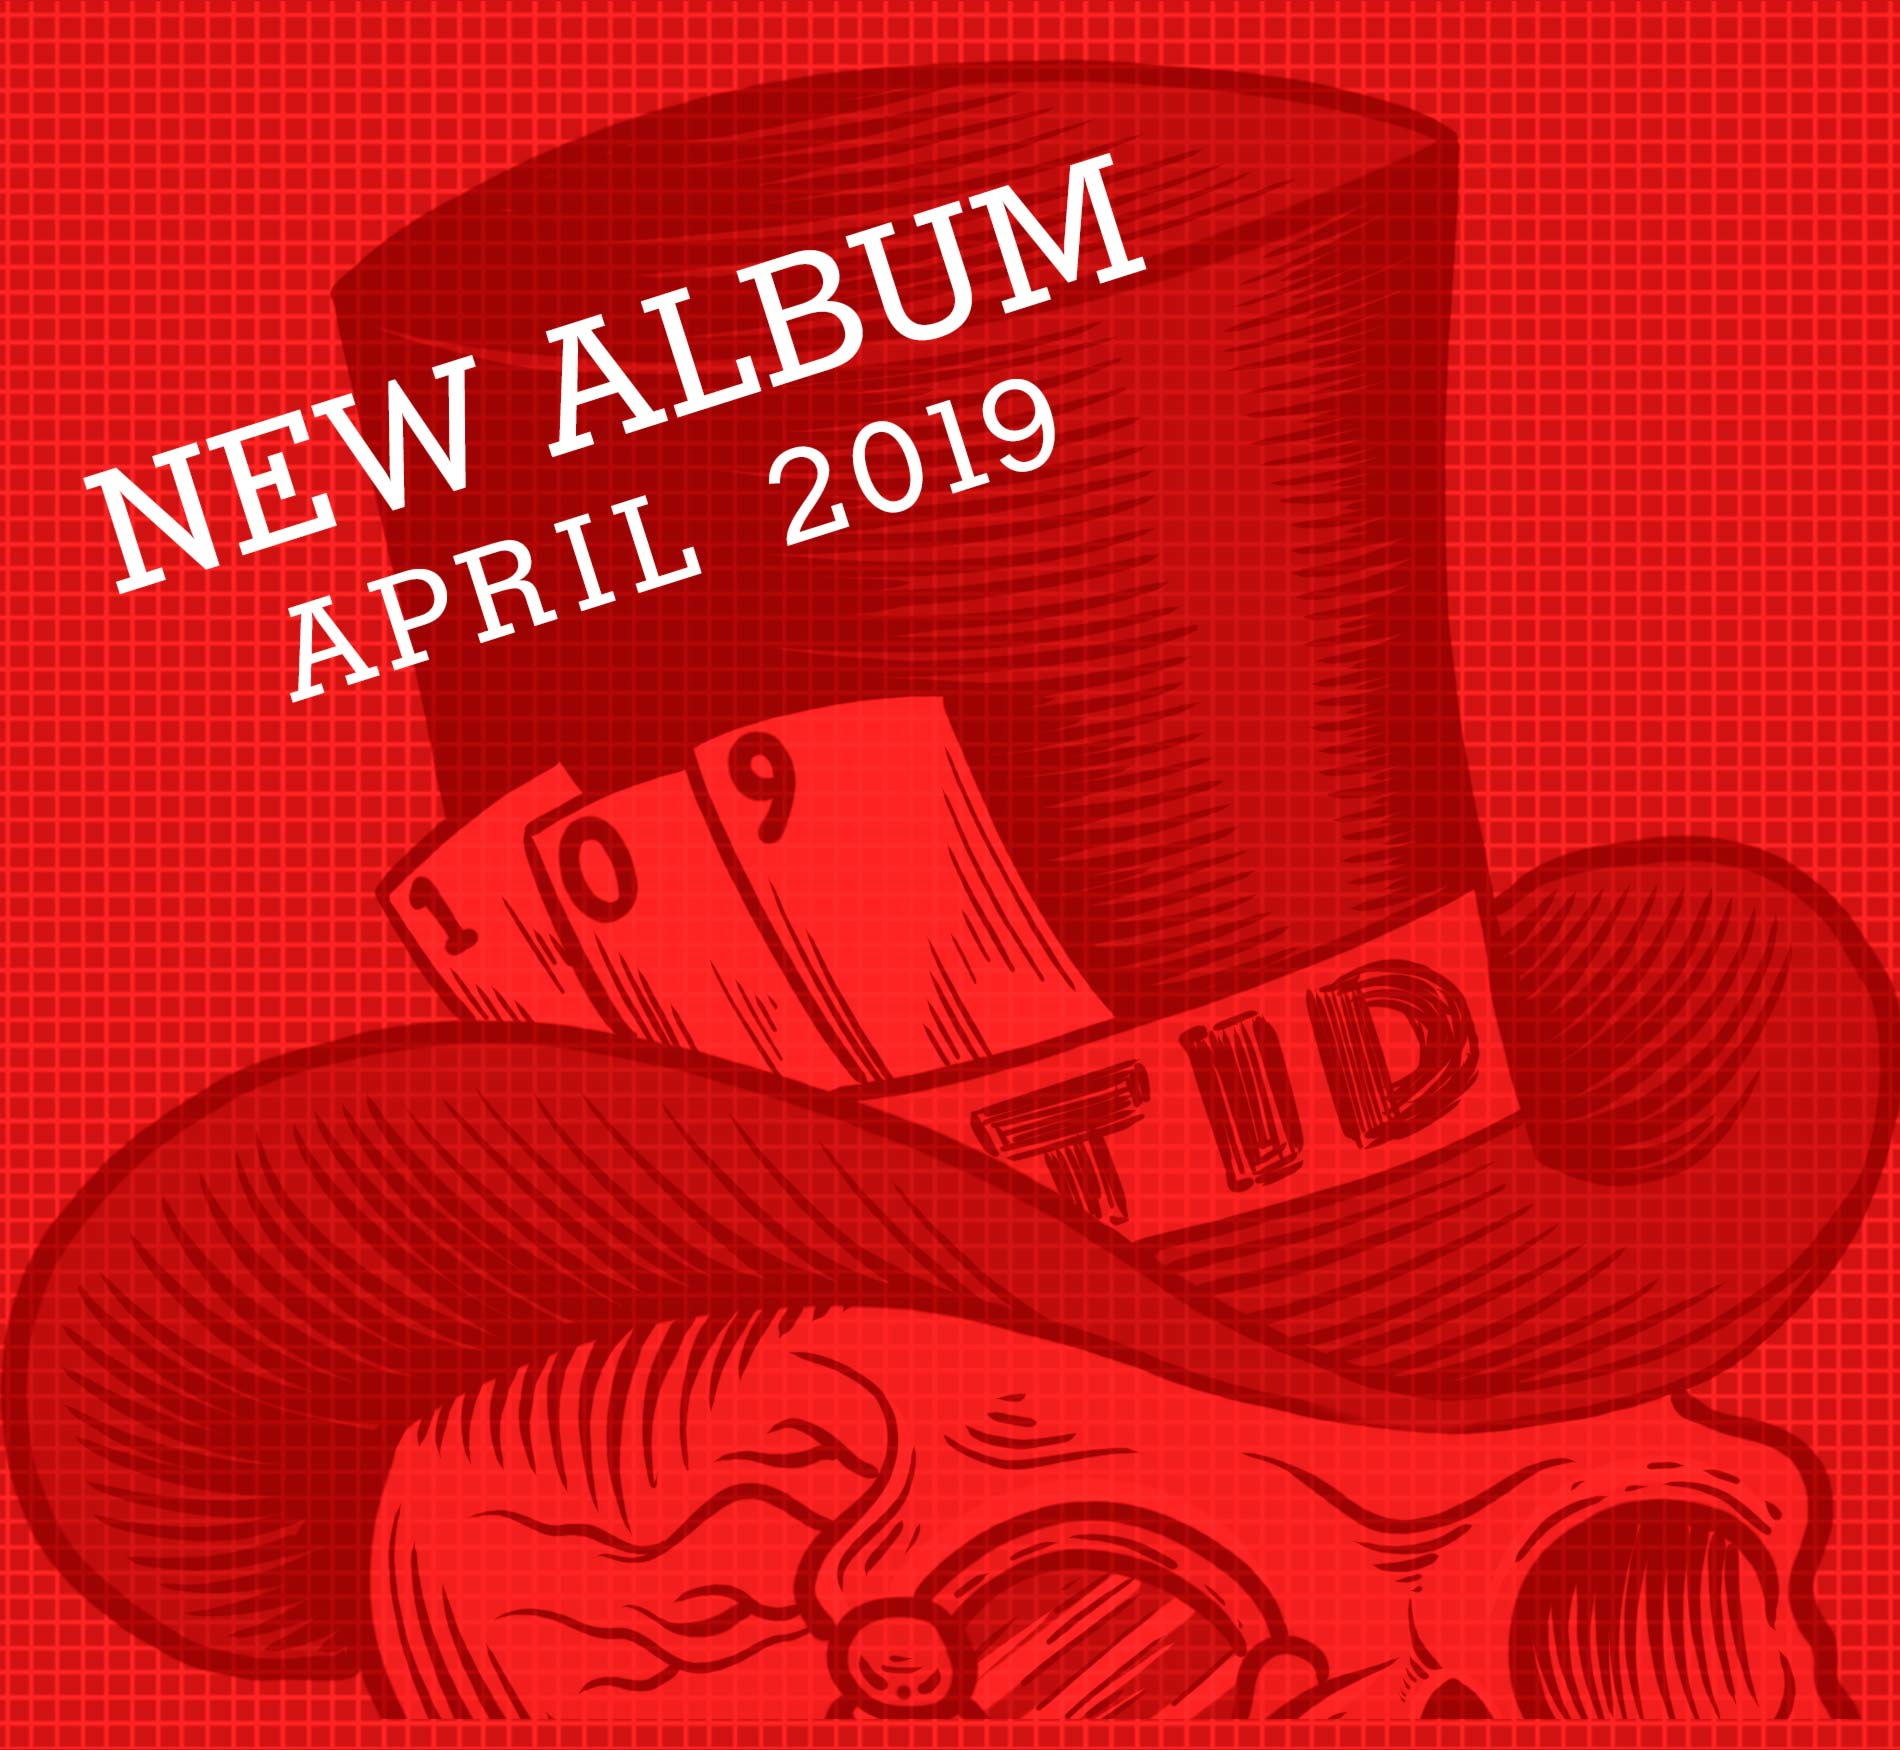 Buck-O-Nine New Album